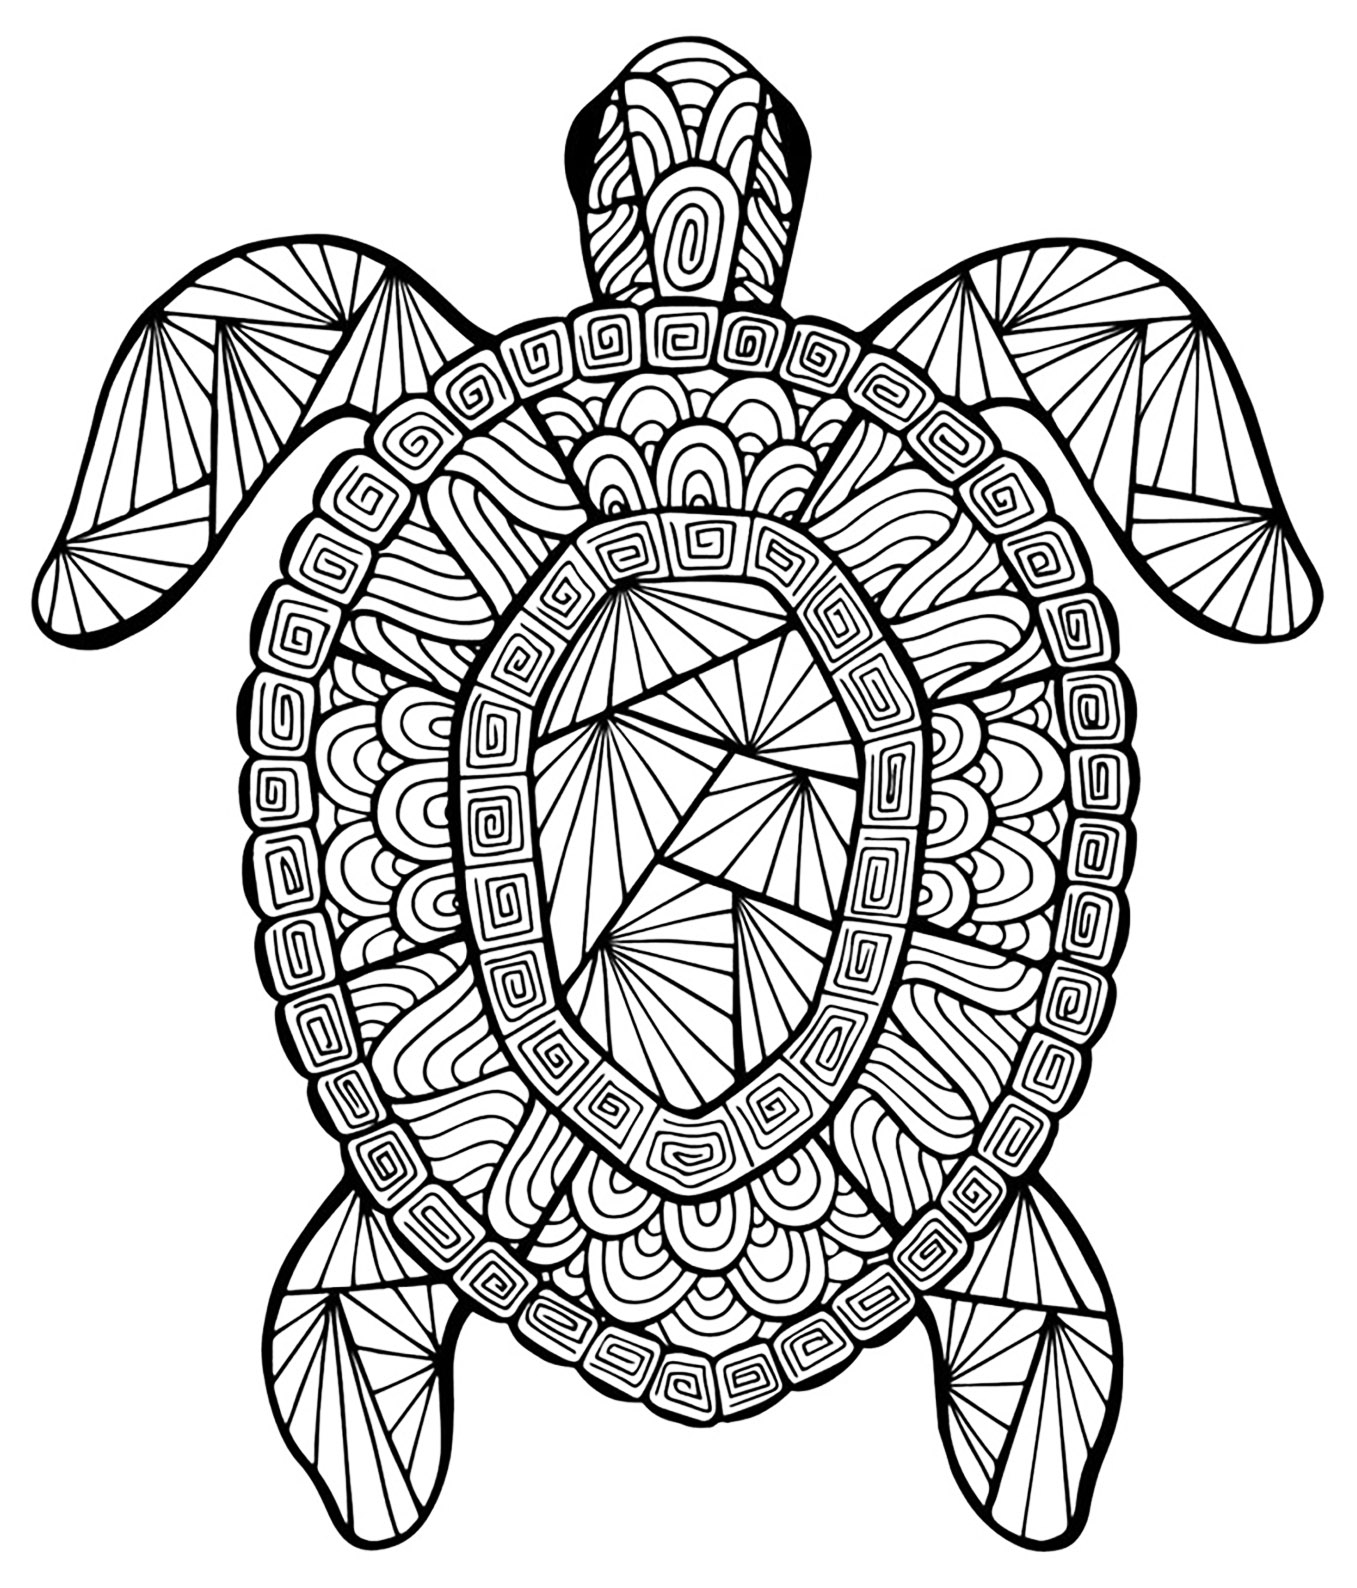 adult coloring pages animals animal coloring pages for adults best coloring pages for animals pages adult coloring